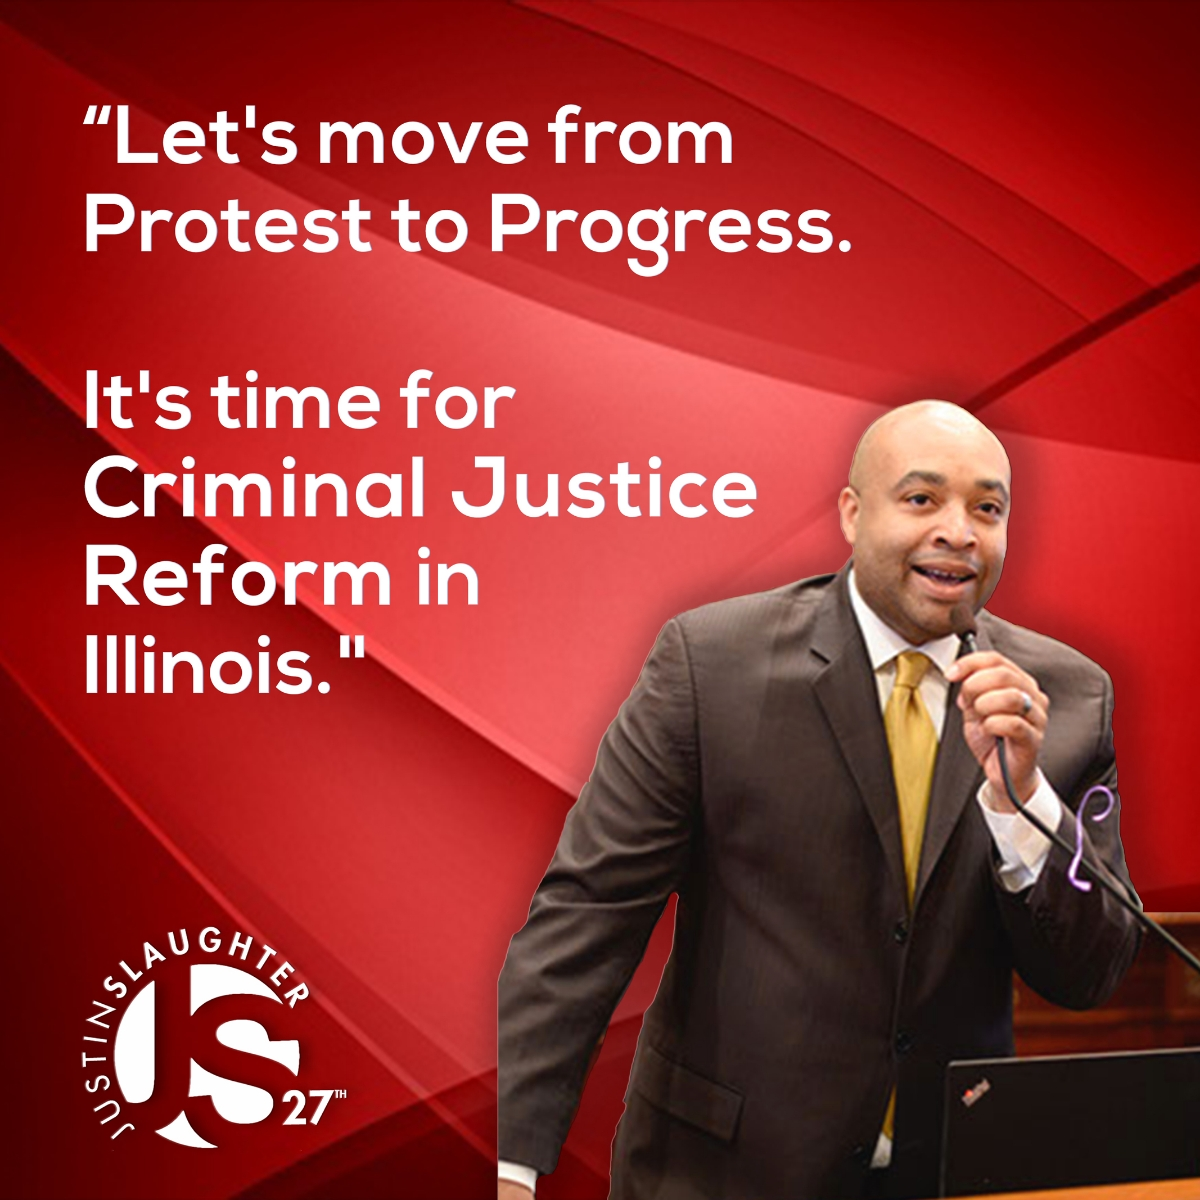 I am so proud we were able to pass the criminal justice reform omnibus bill in the House. This bill is monumental and I cannot say thank you enough to the countless organizers and organizations who've, over several years of hard work, helped us get to this moment.